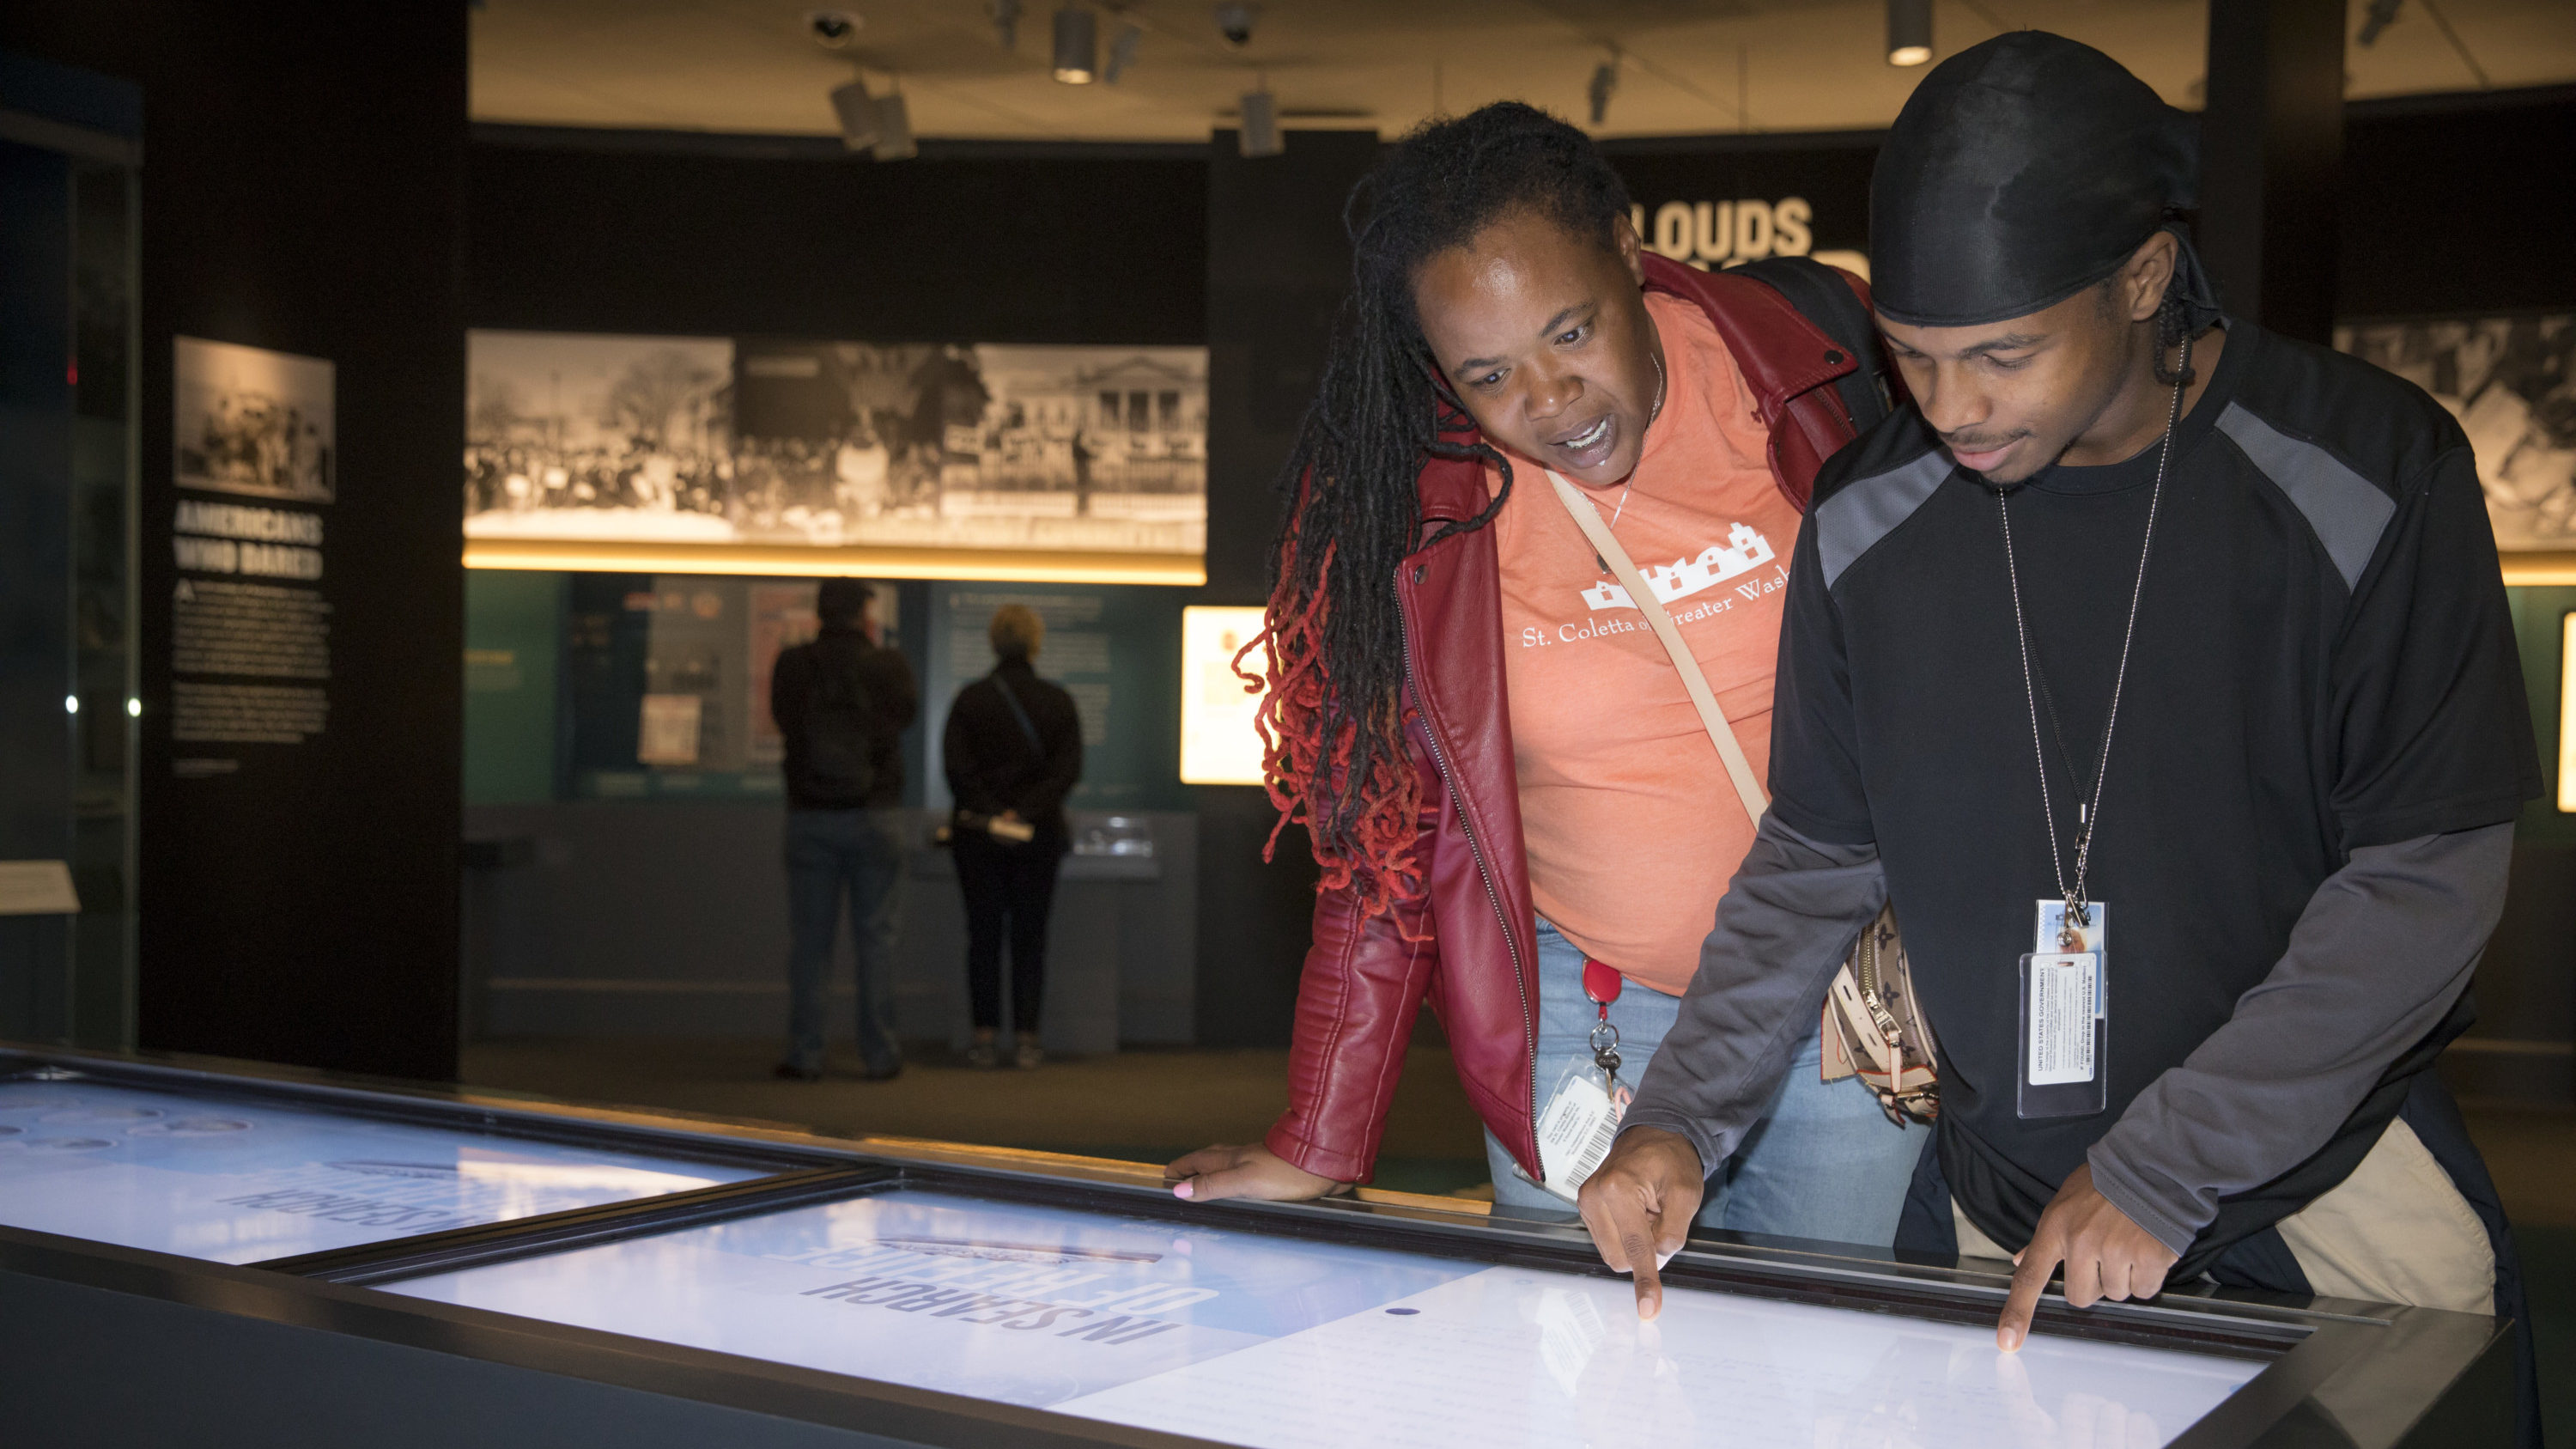 Two people bent over an interactive display table in a museum gallery.